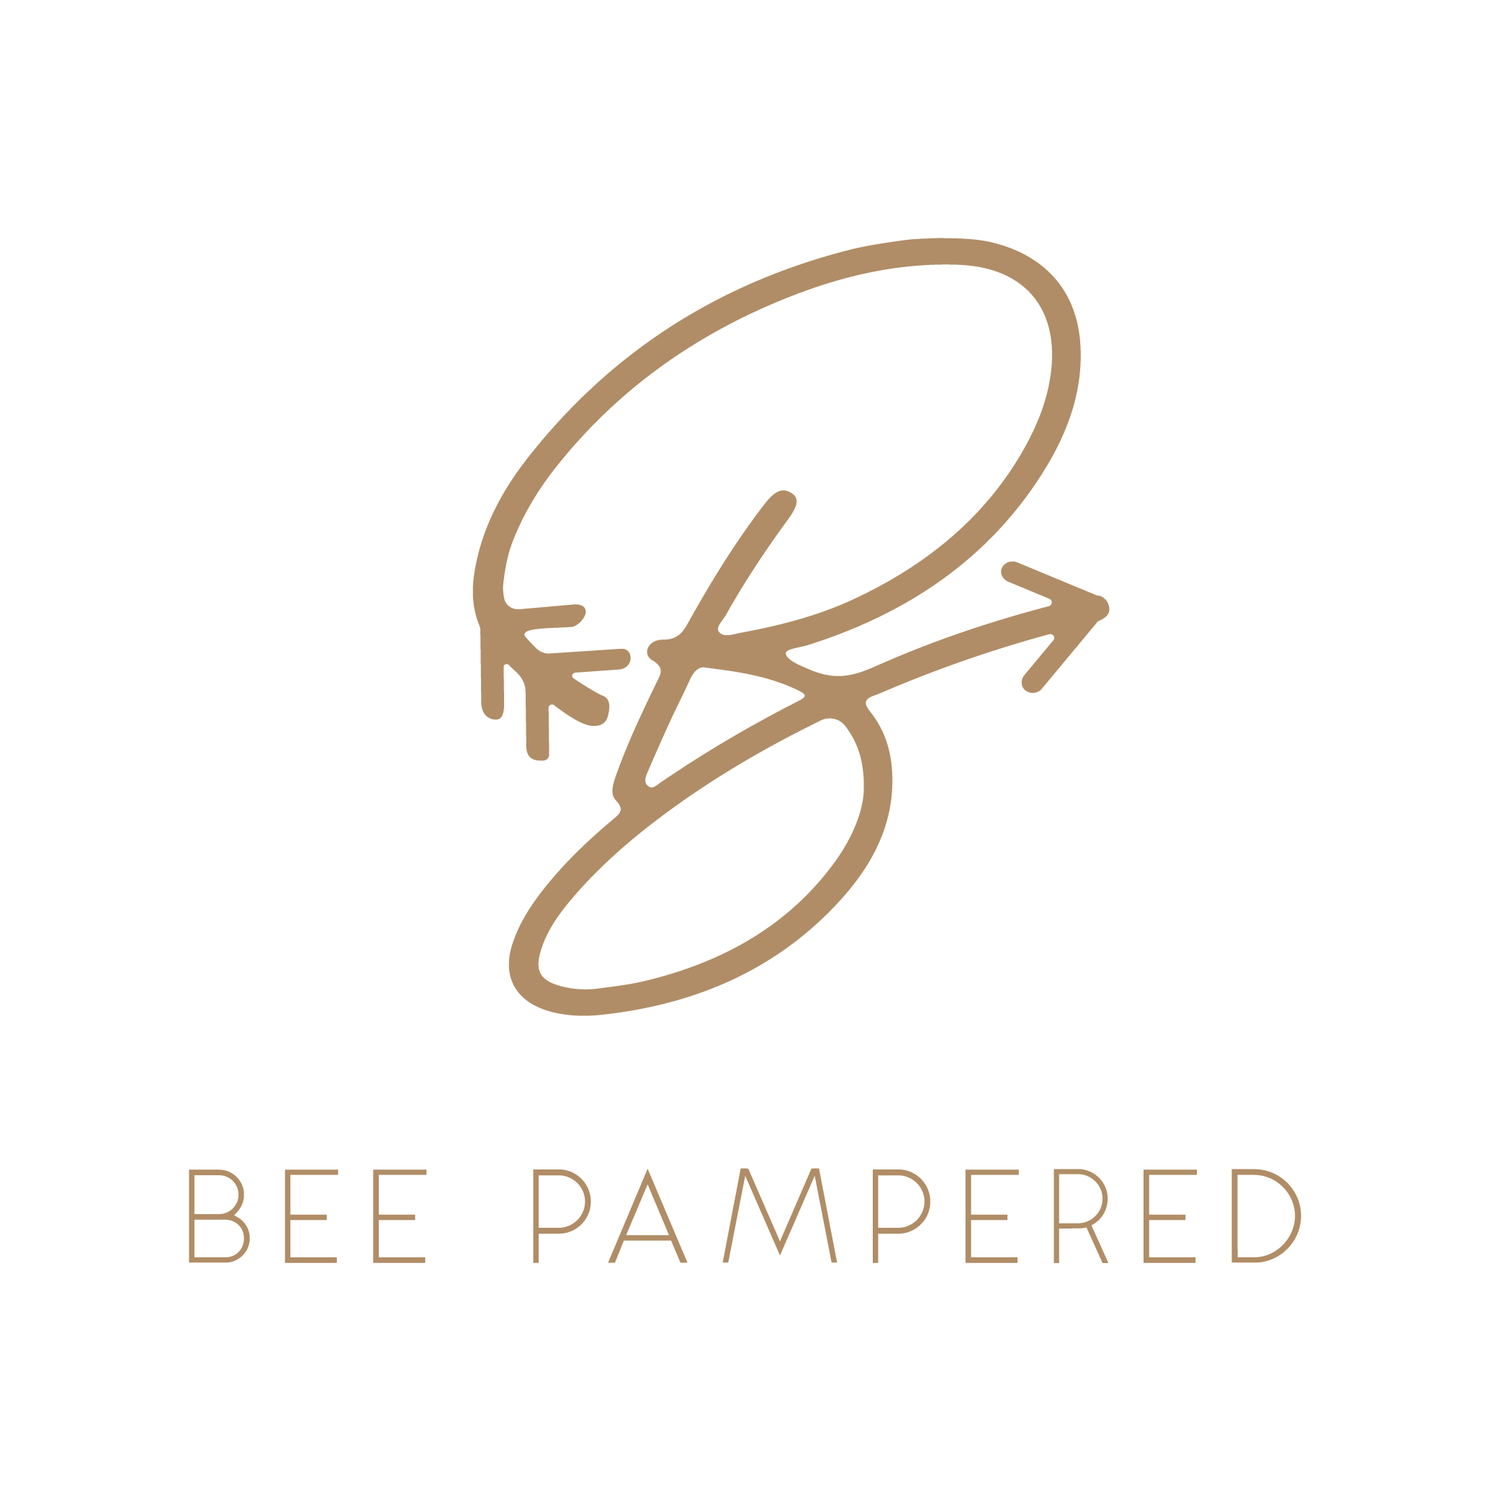 887c6155633 Bee Pampered